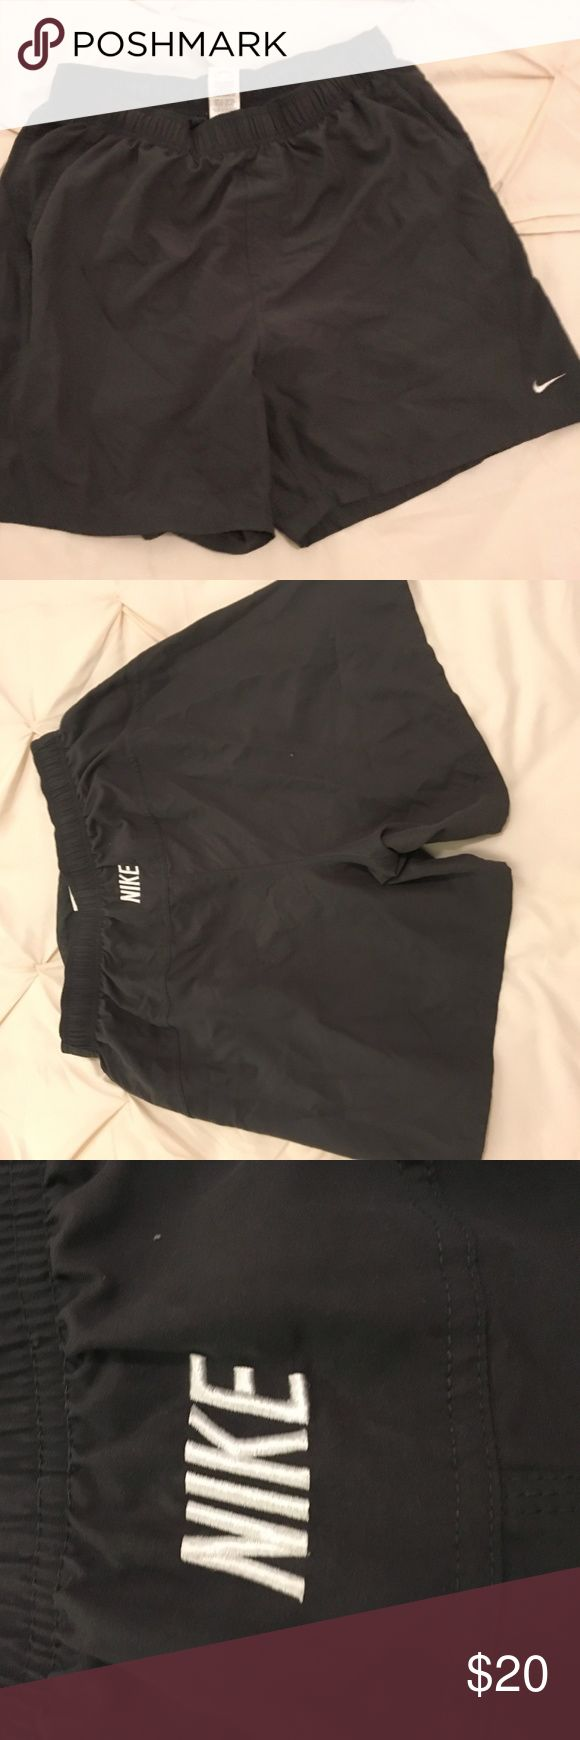 NikeSWIM swim shorts, black, size XL NikeSWIM shorts, black, size XL Nike Swim Swim Trunks